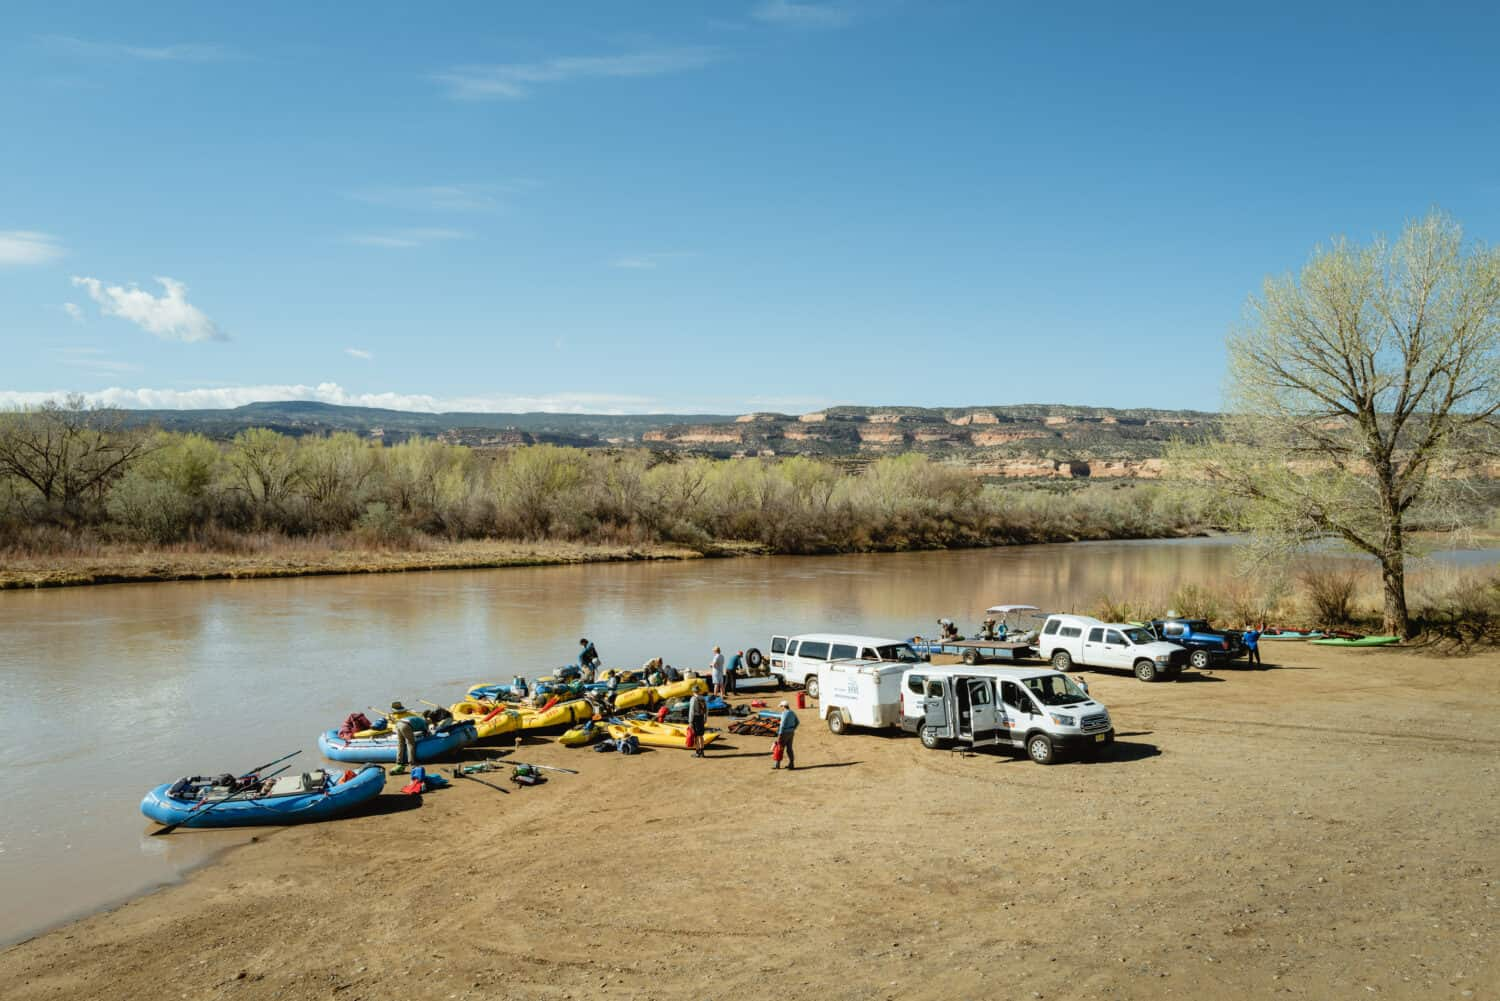 Launching rafting boats in the Colorado River